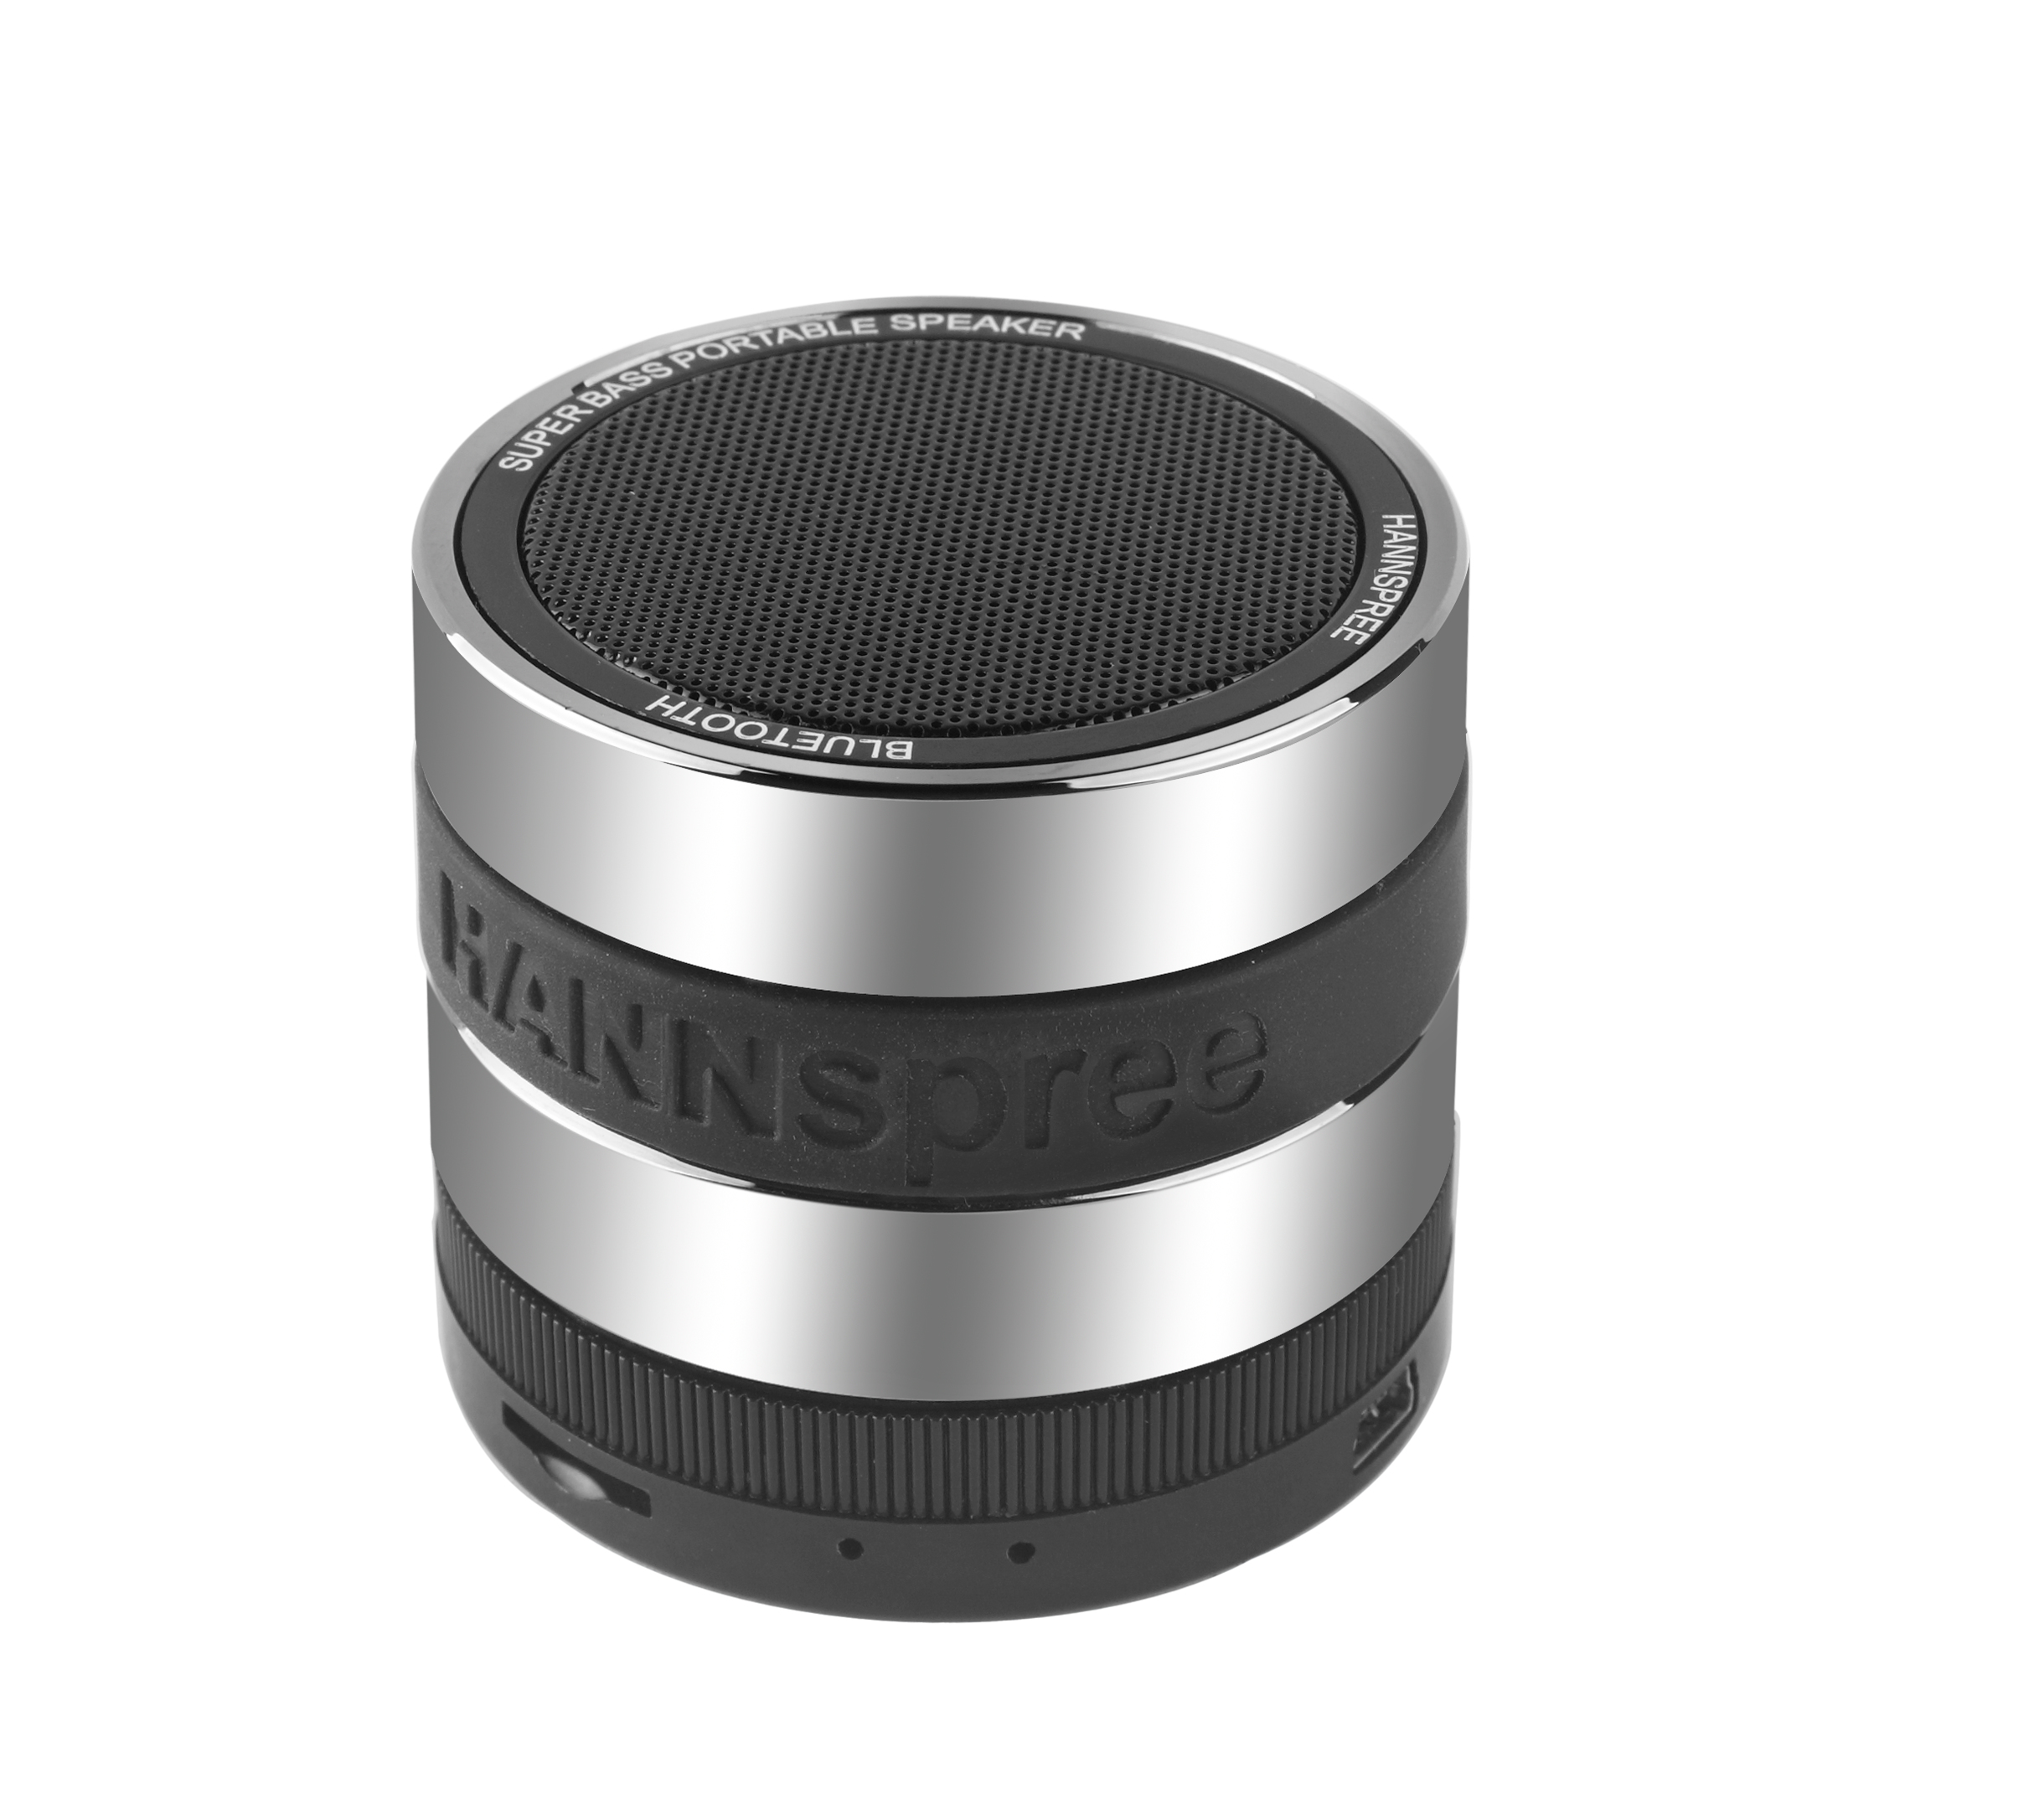 Hannspree Fortissimo Stereo 3W Cylinder Black,Grey